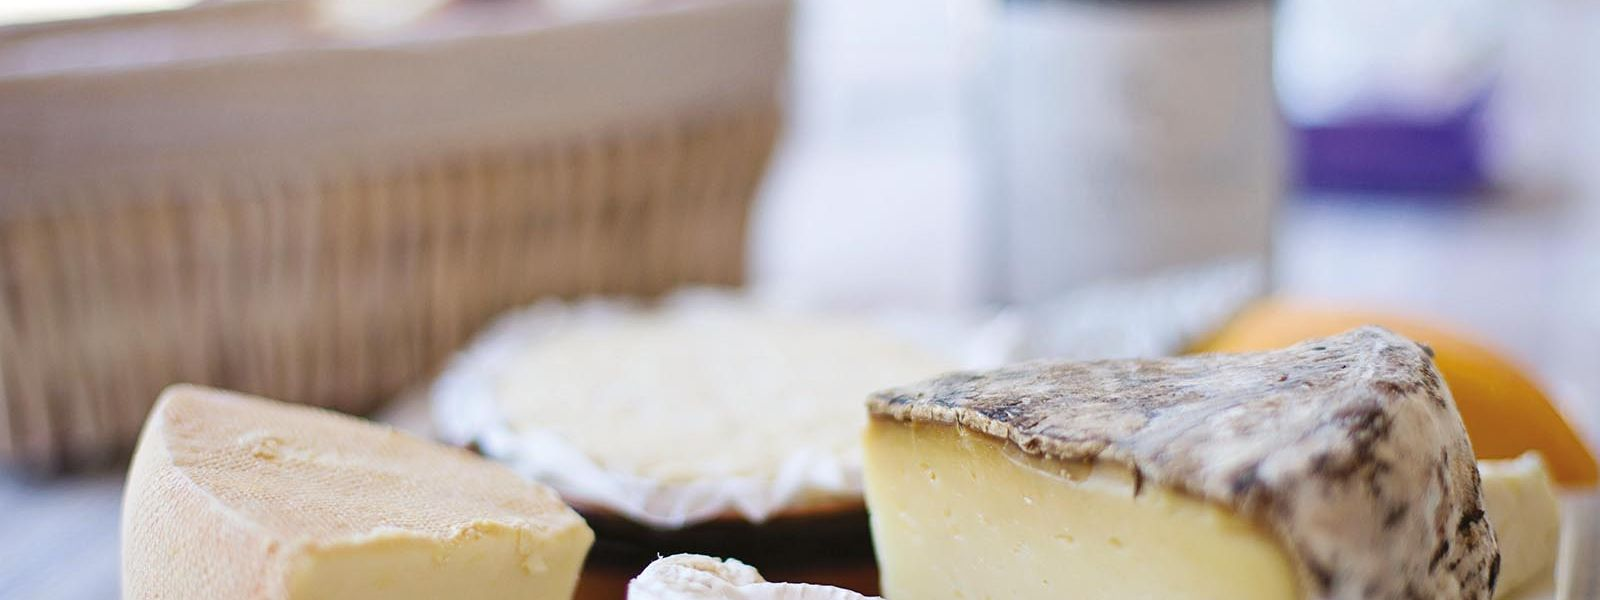 magasin-specialistes-fromage-boisenardres.jpg